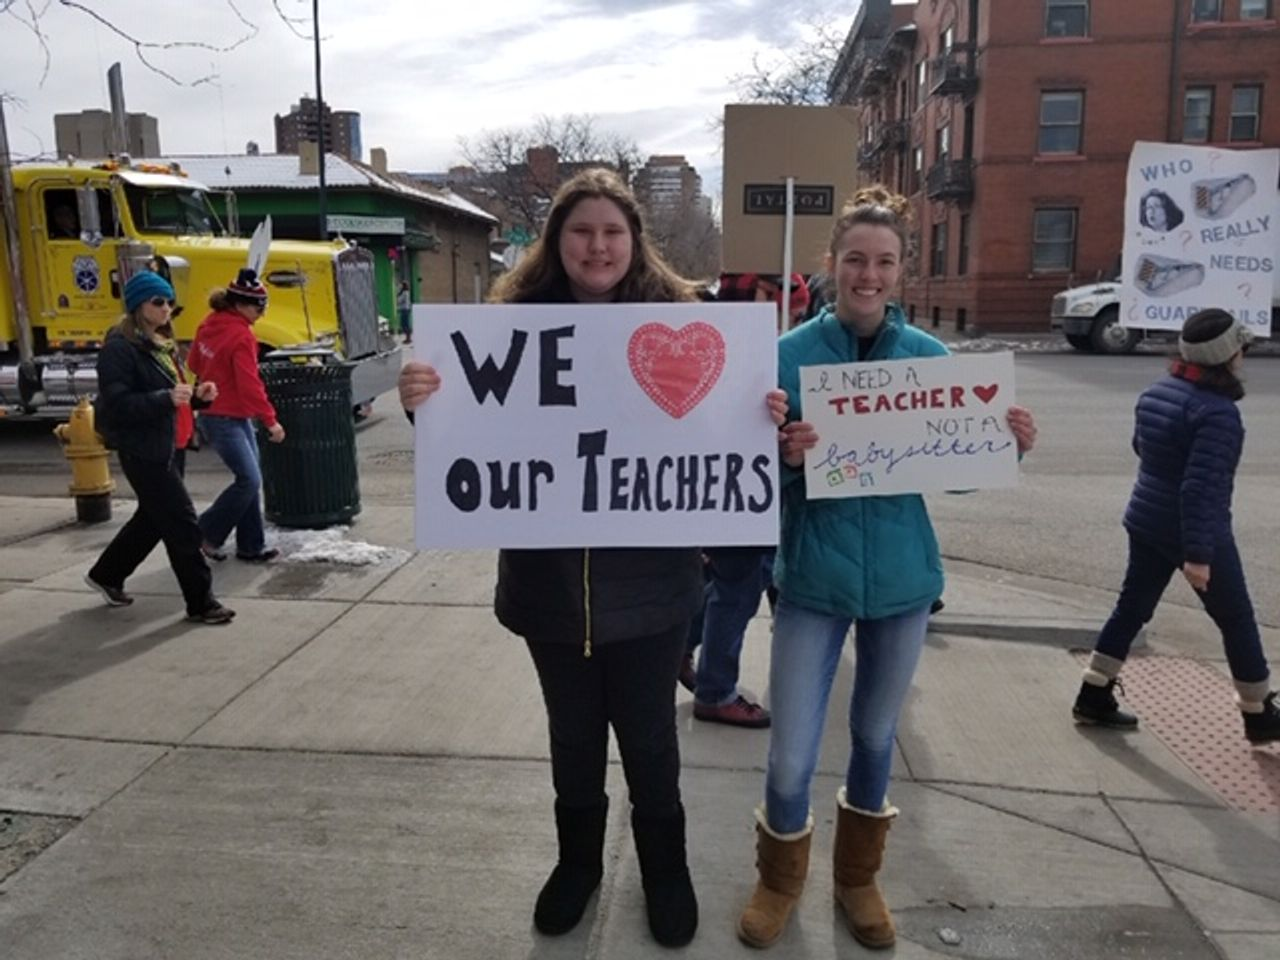 Rebekah and Cathryn marching to support their teachers